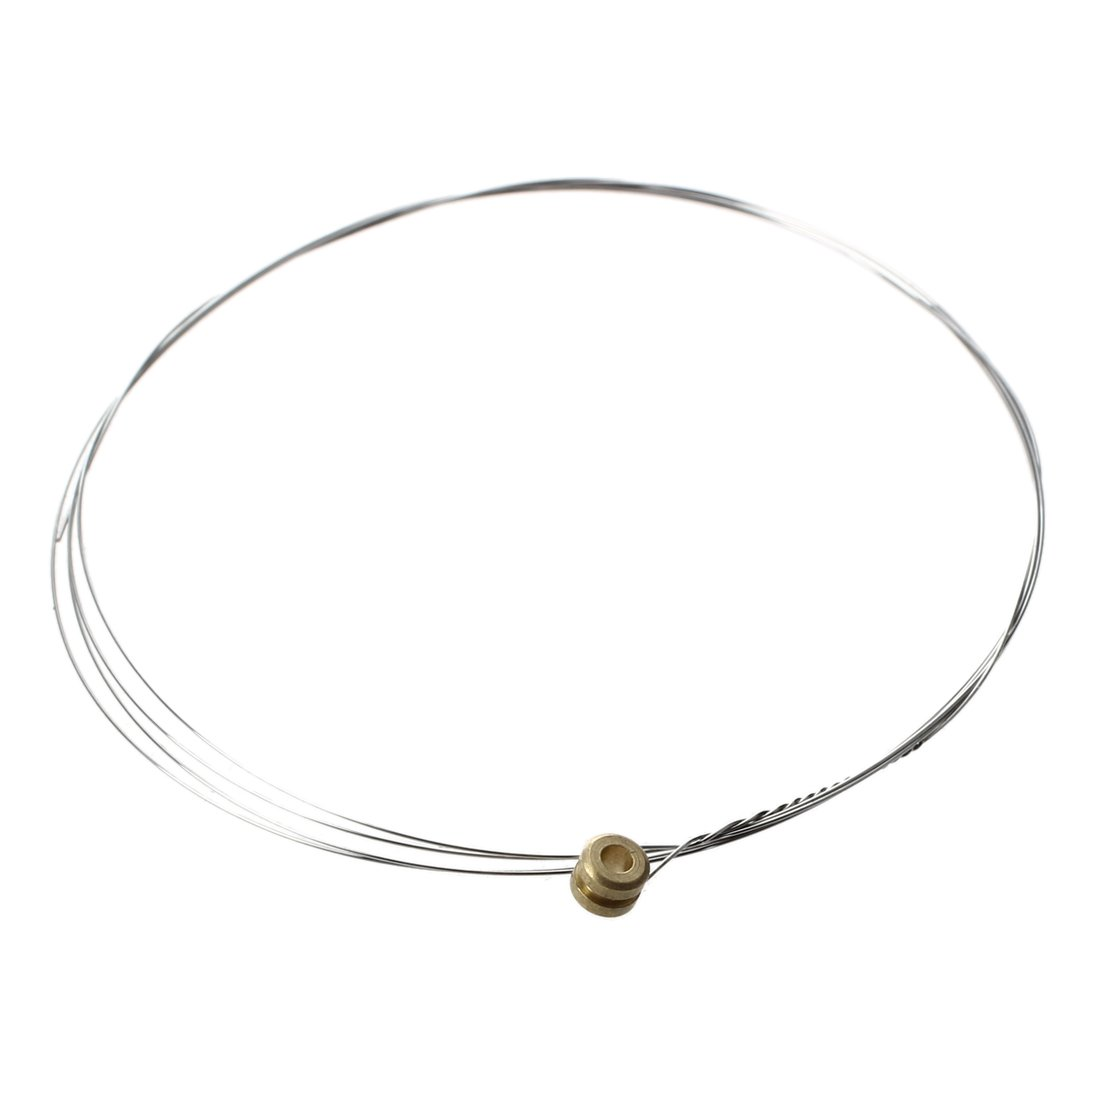 Guitar String - SODIAL(R)218 E-1 Wire Stainless Professionally Copper Alloy Guitar Strings